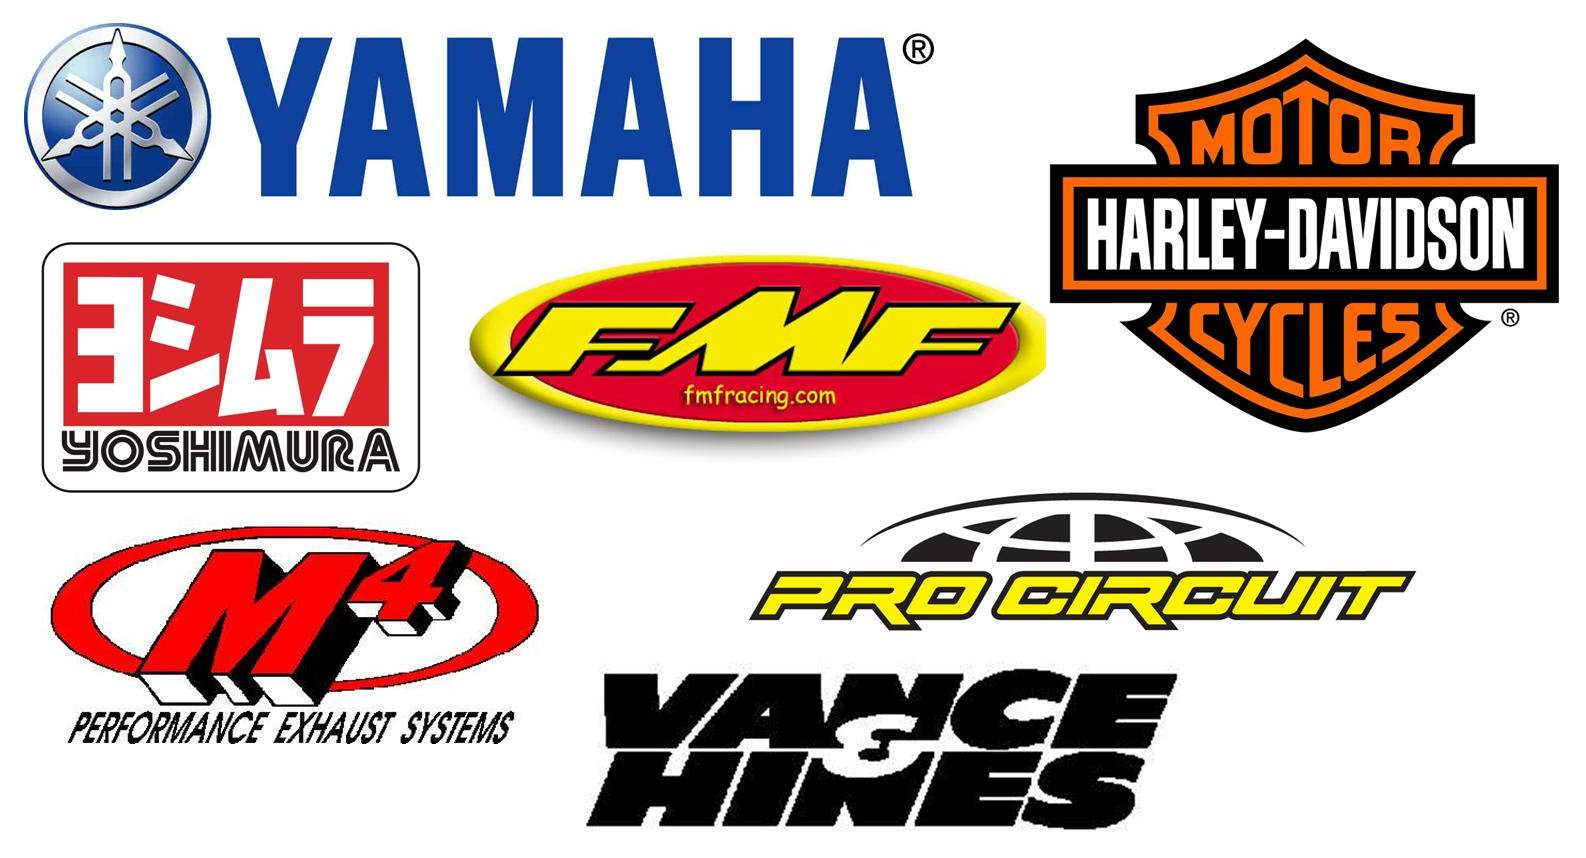 Our customers include international automotive and motorcycle manufacturers.